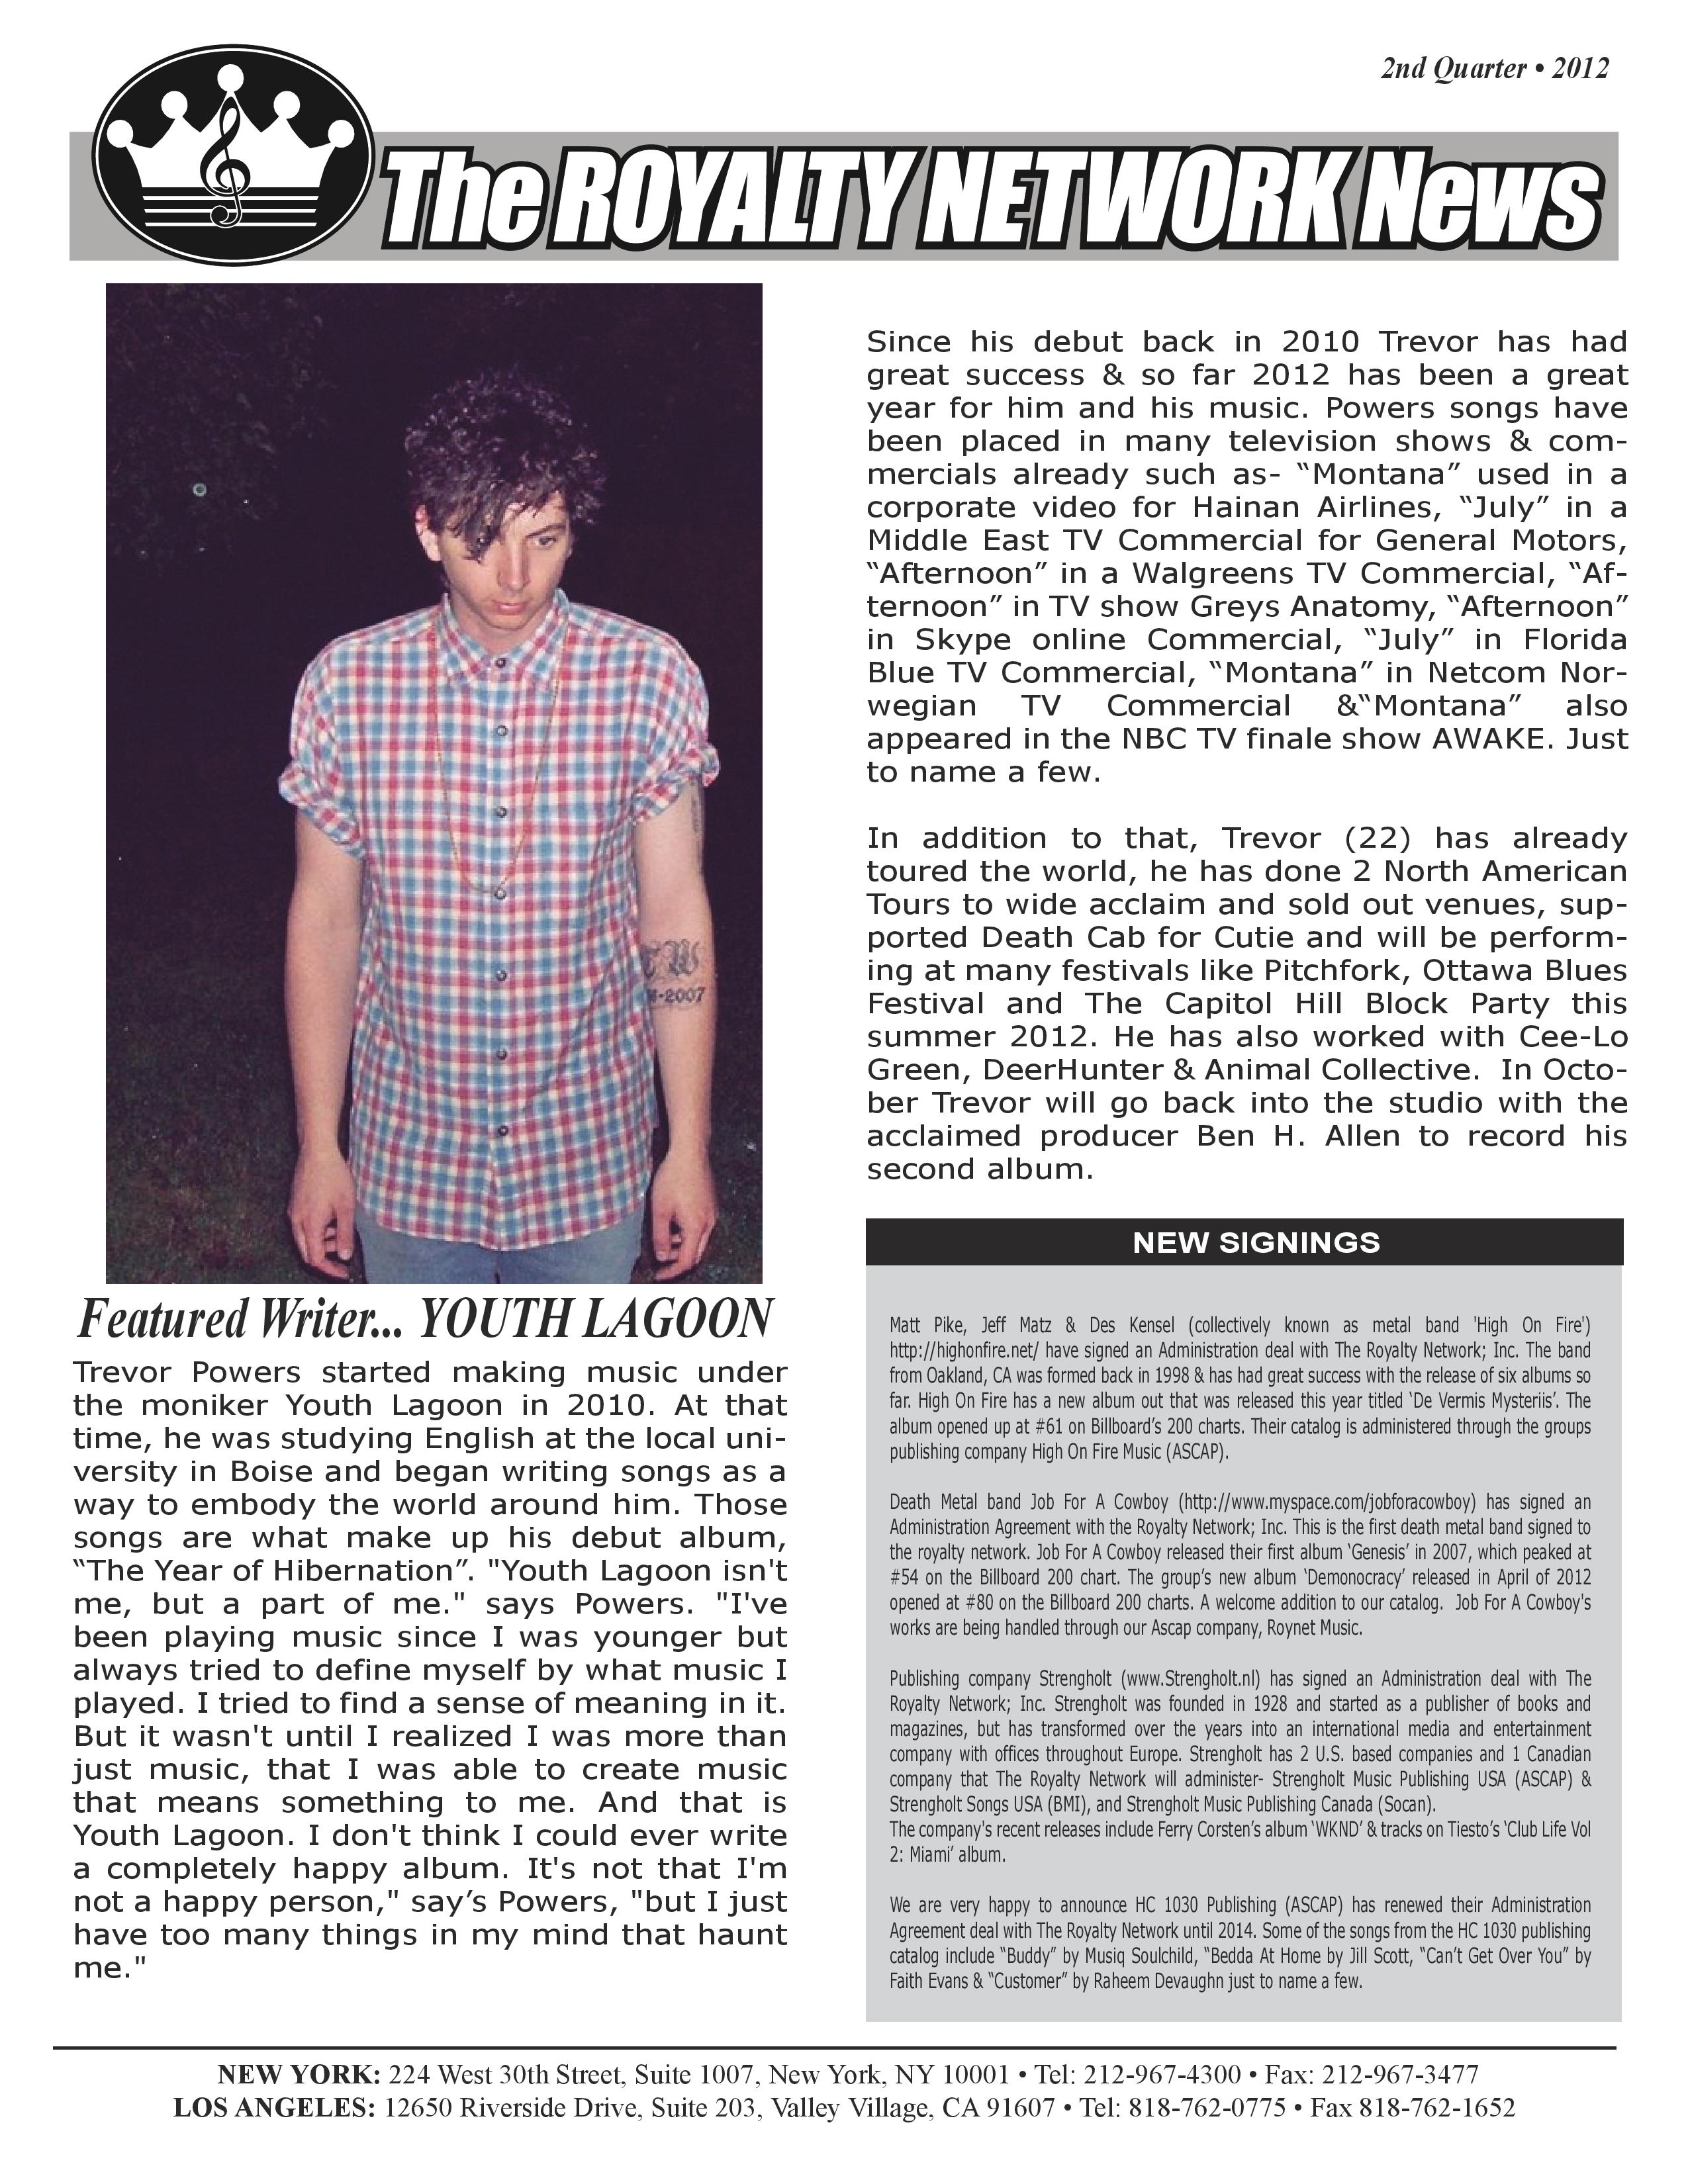 2nd Quarter 2012 Edition of the Royalty Newtork News.